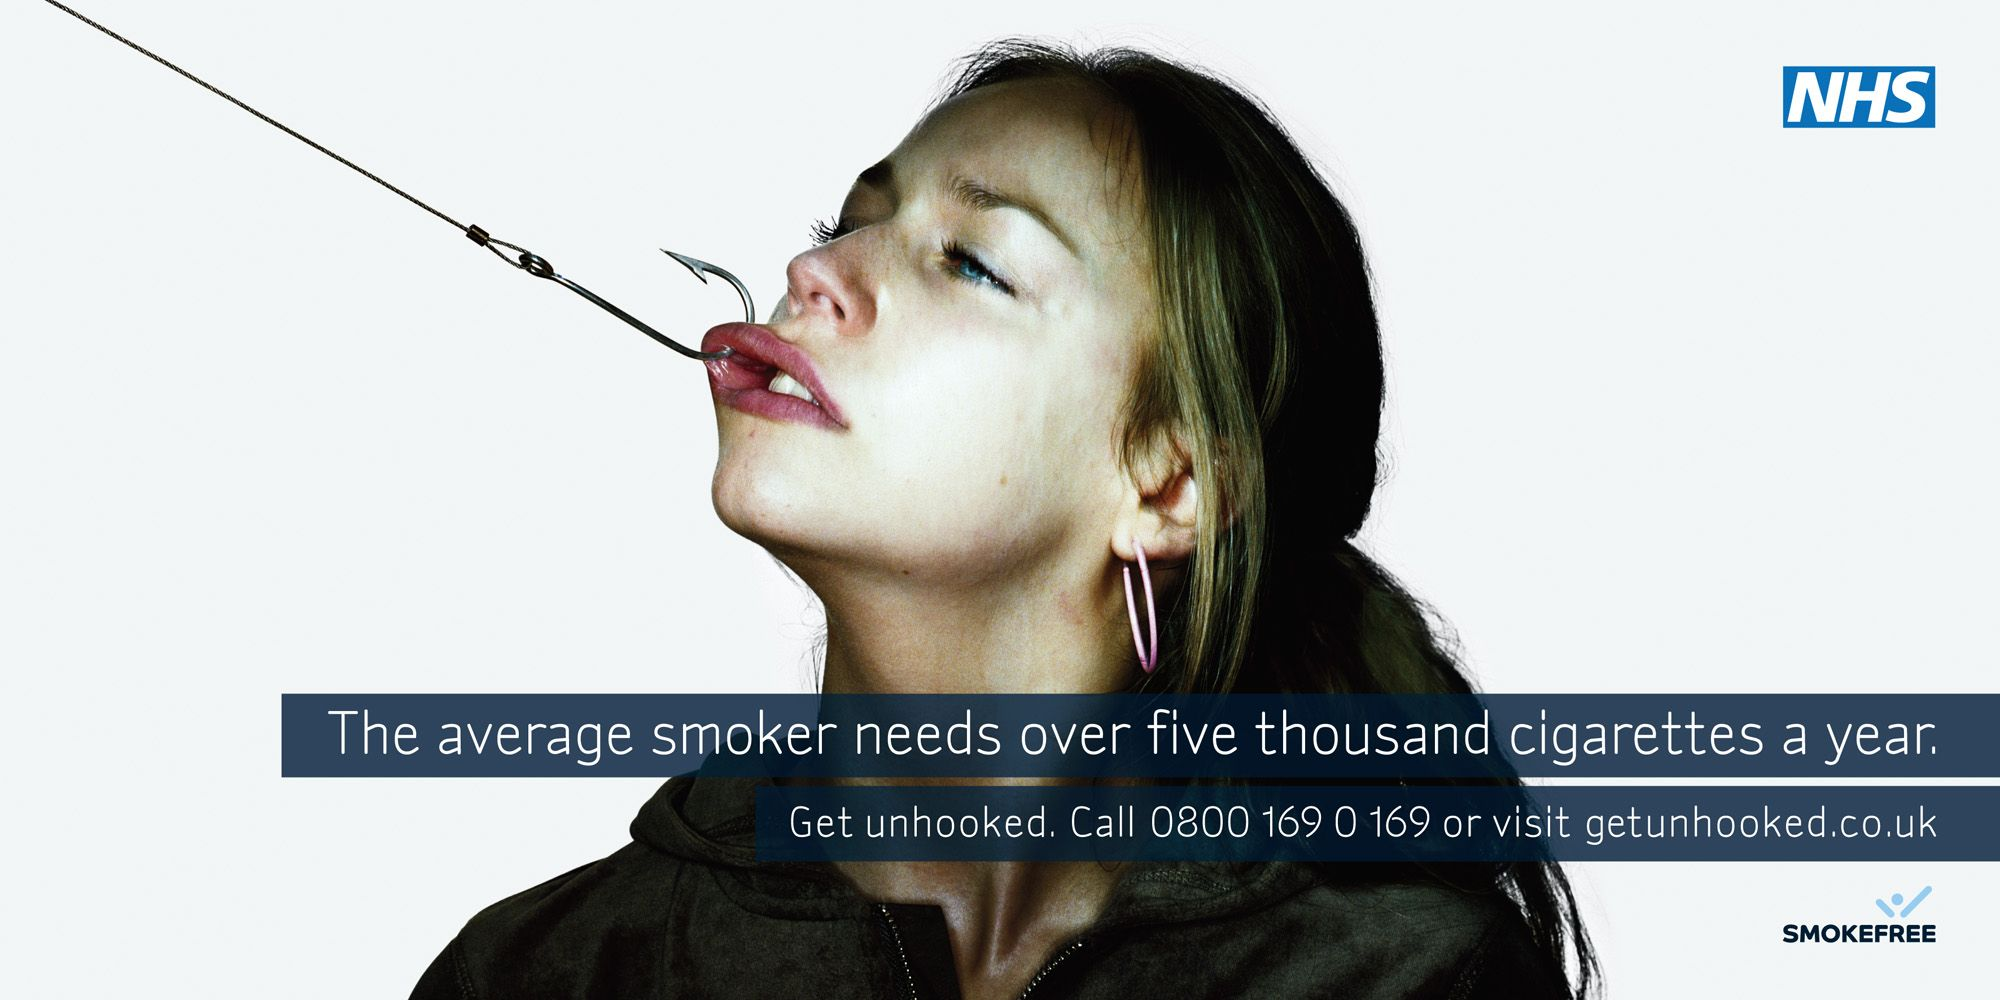 This Is Shock Advertising The Image You Initially See Grabs Your - 35 controversial shocking adverts make stop think